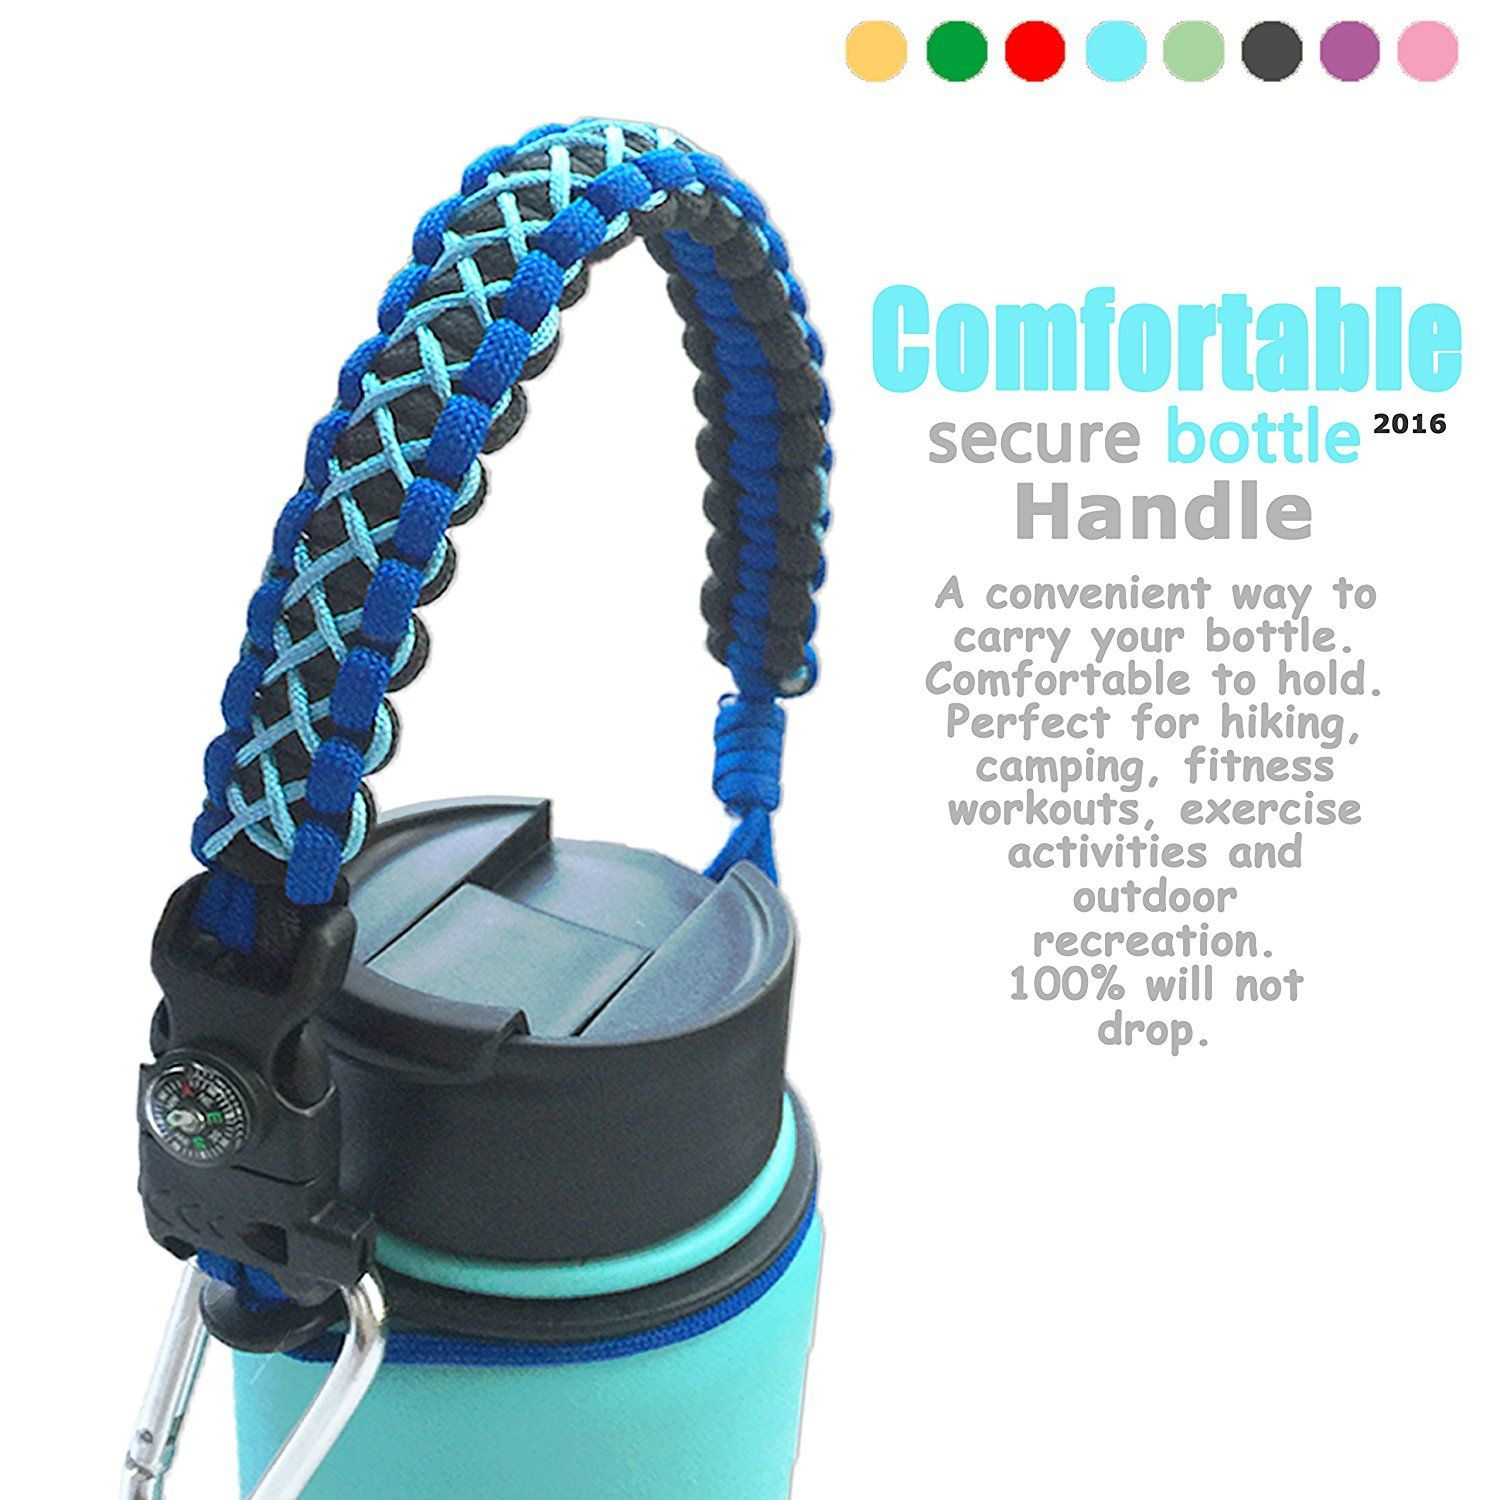 ... Gci Outdoor Everywhere Chair Canada By Qeelink Handle For Hydro Flask  Security Design Wide Mouth ...